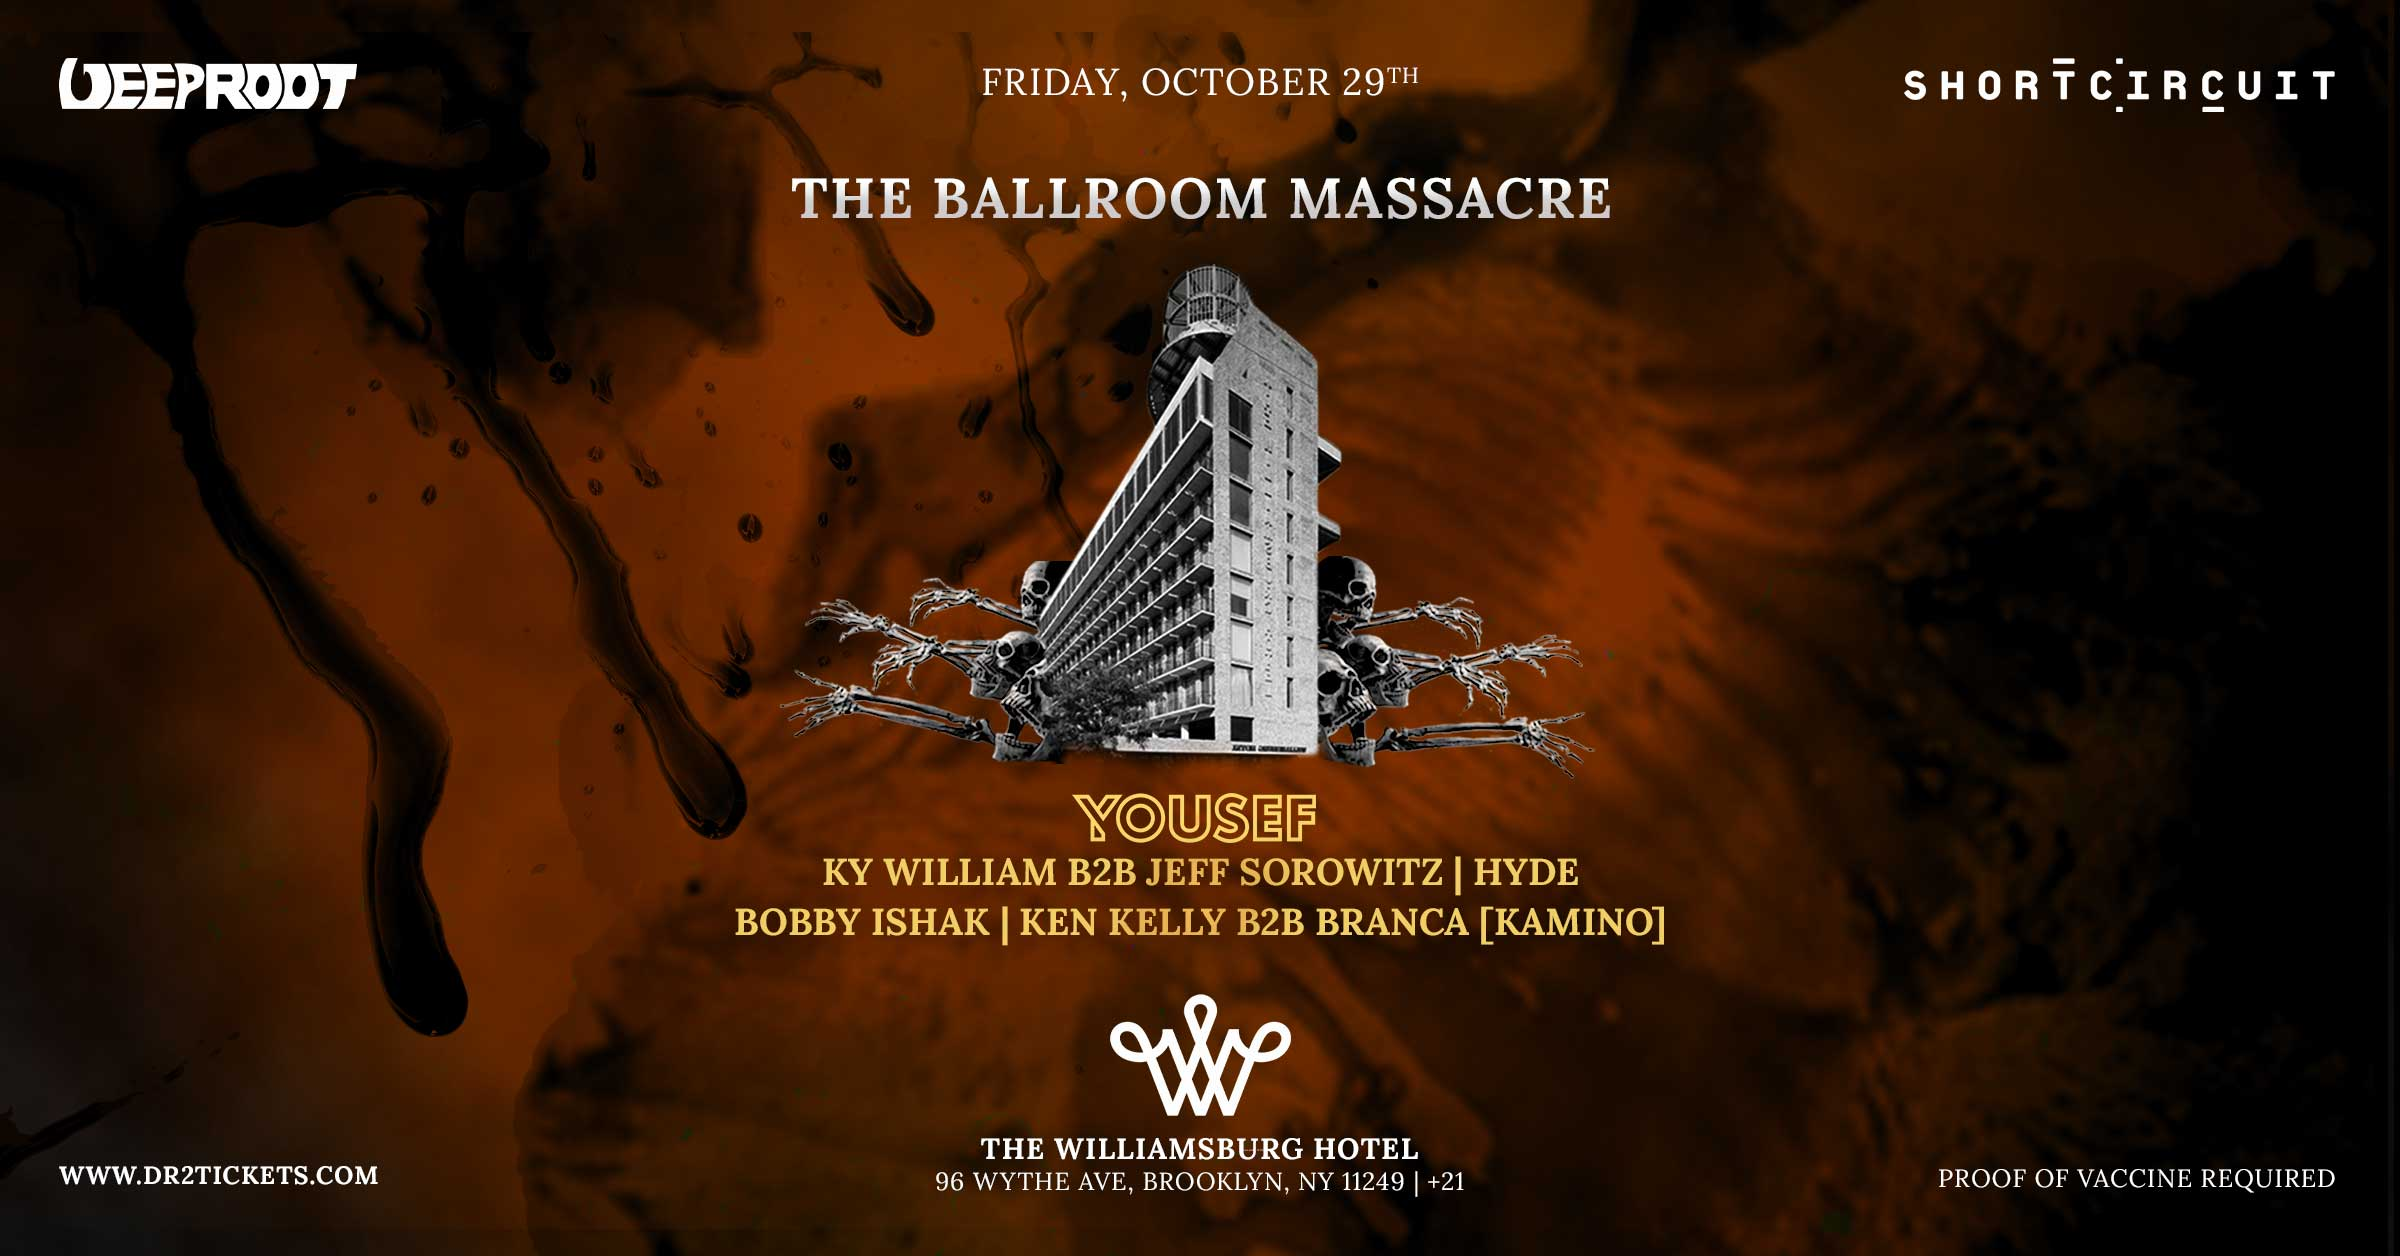 The Ballroom Massacre Ft. Yousef At The Williamsburg Hotel [10/29]